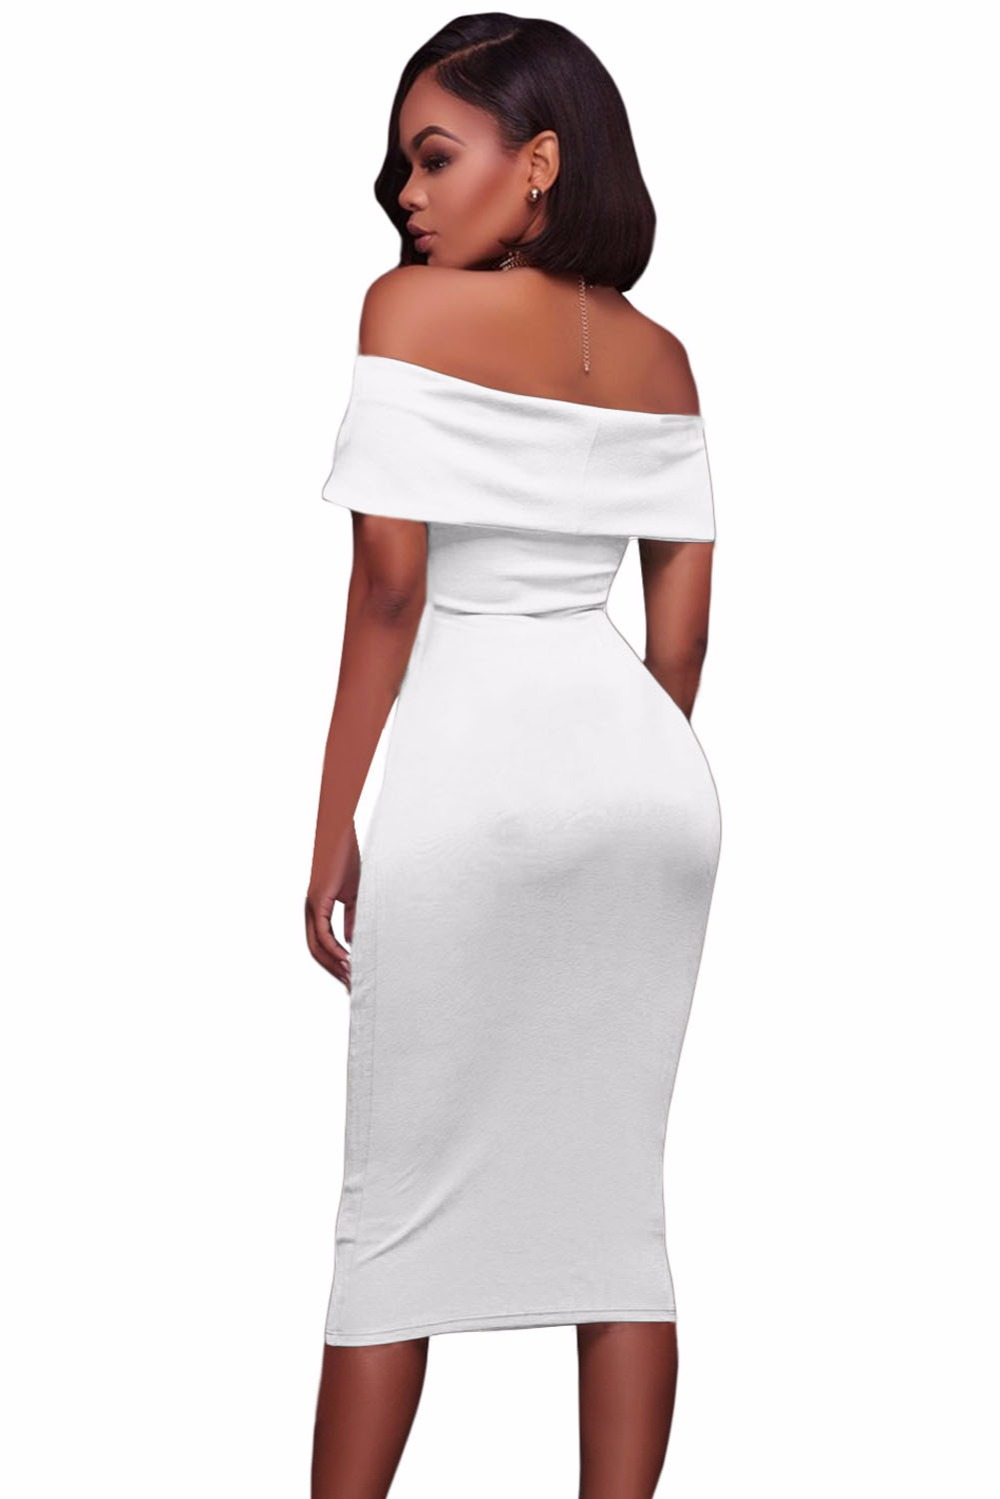 White-Ruched-Off-Shoulder-Bodycon-Midi-Dress-LC61507-1-3